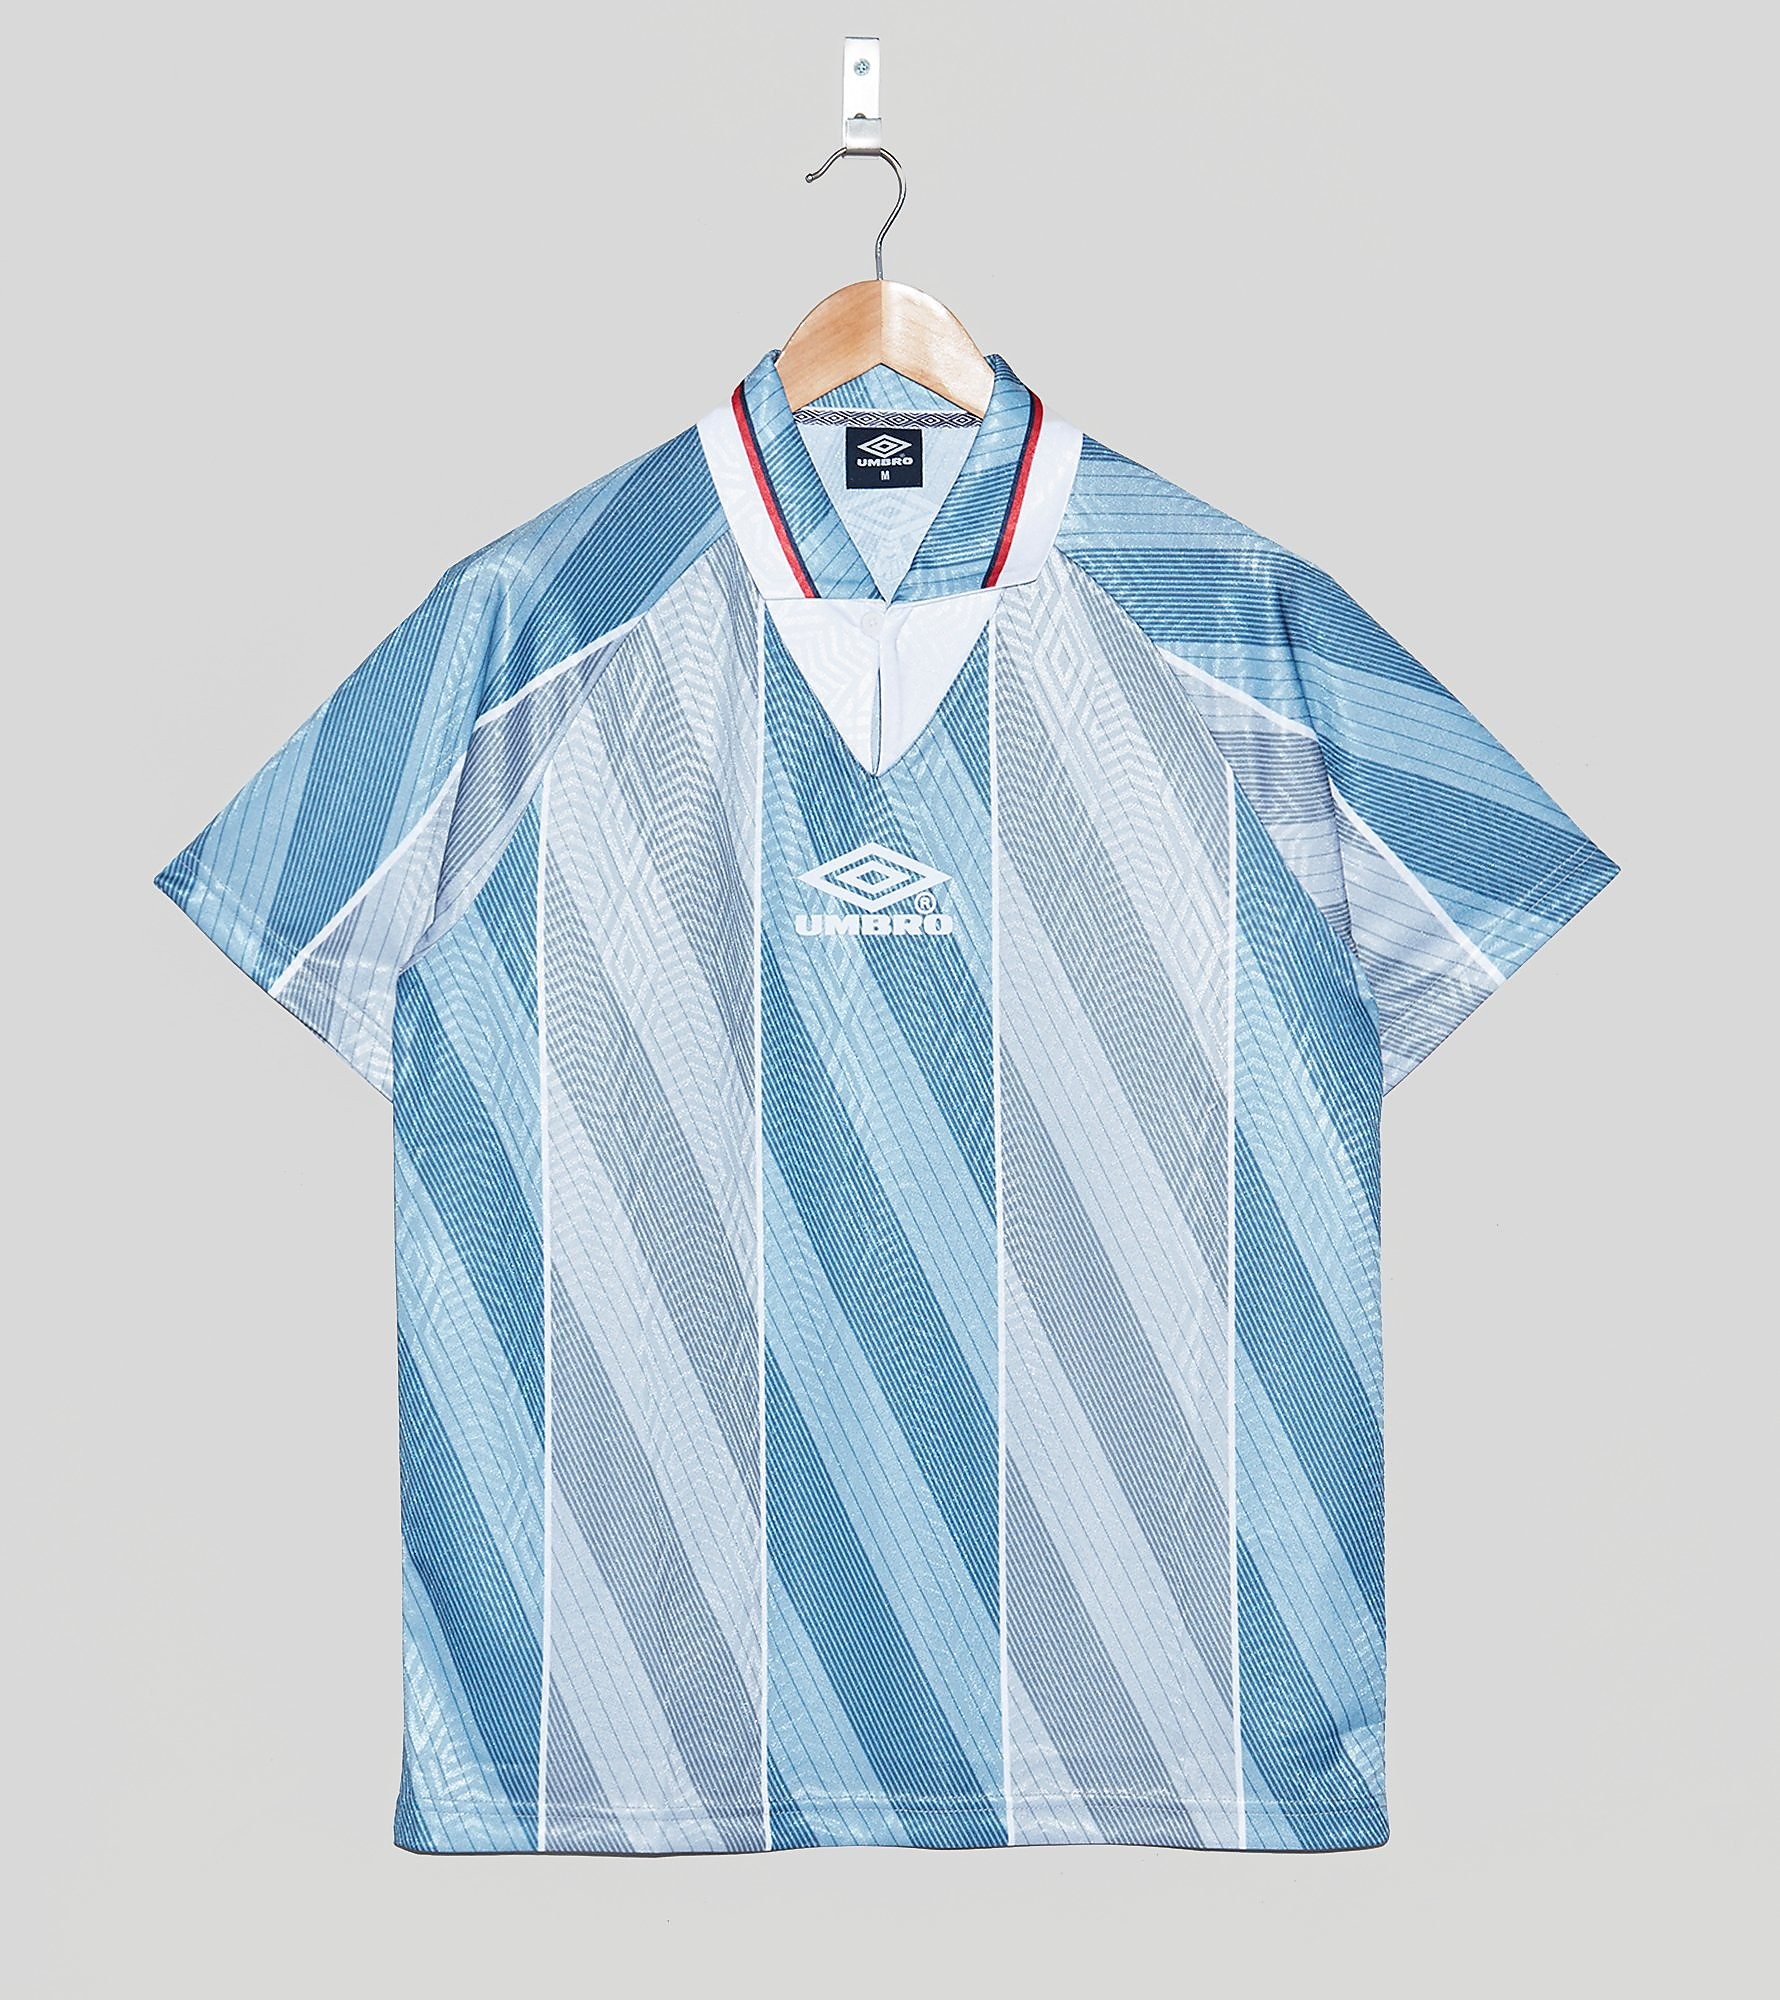 Umbro E96 Away Top